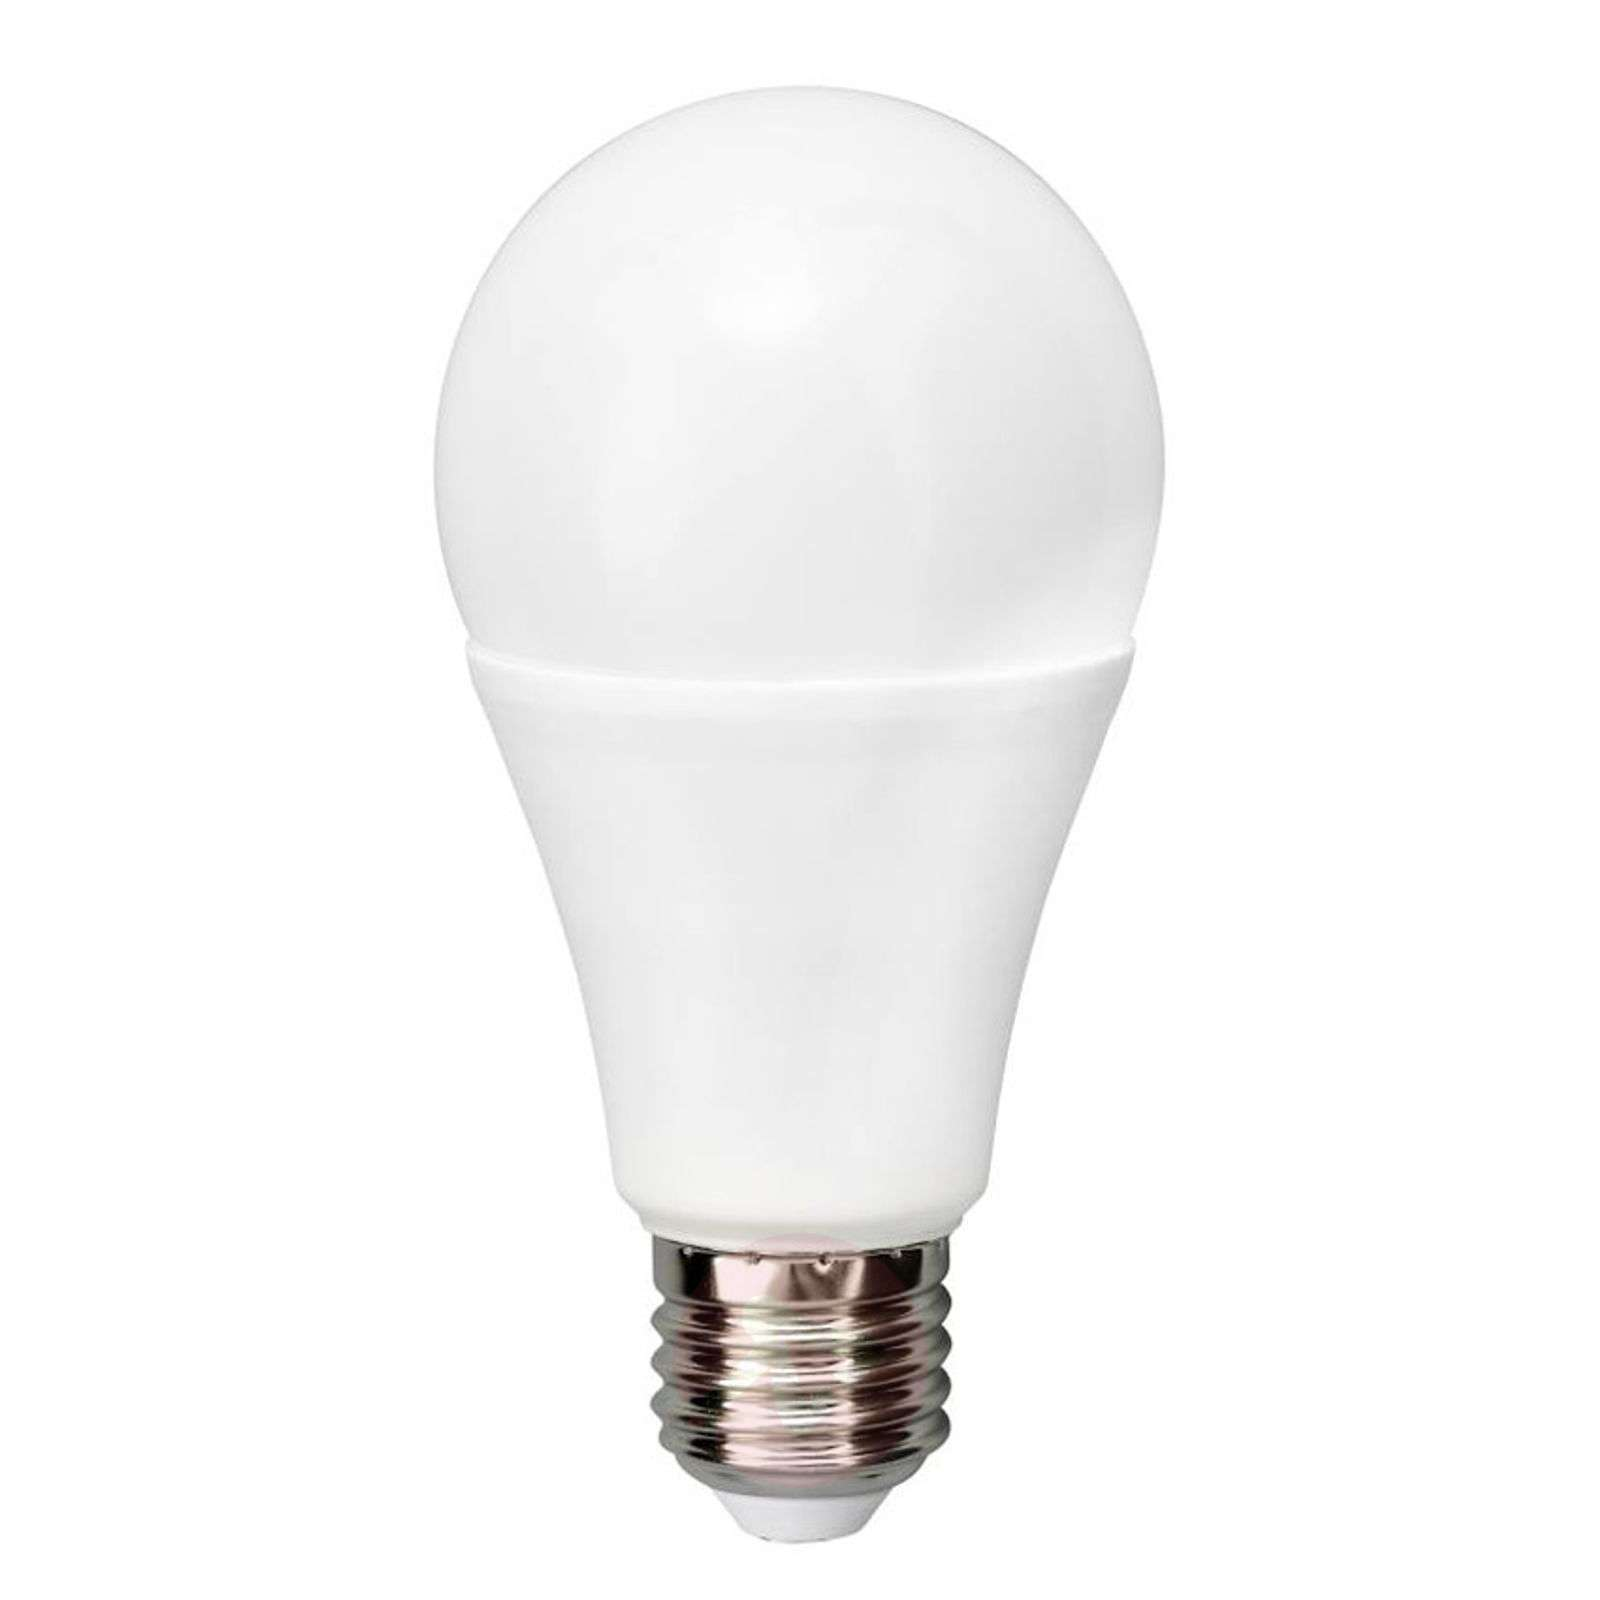 Ampoule LED E27 A65 12 W 2 700 K mate